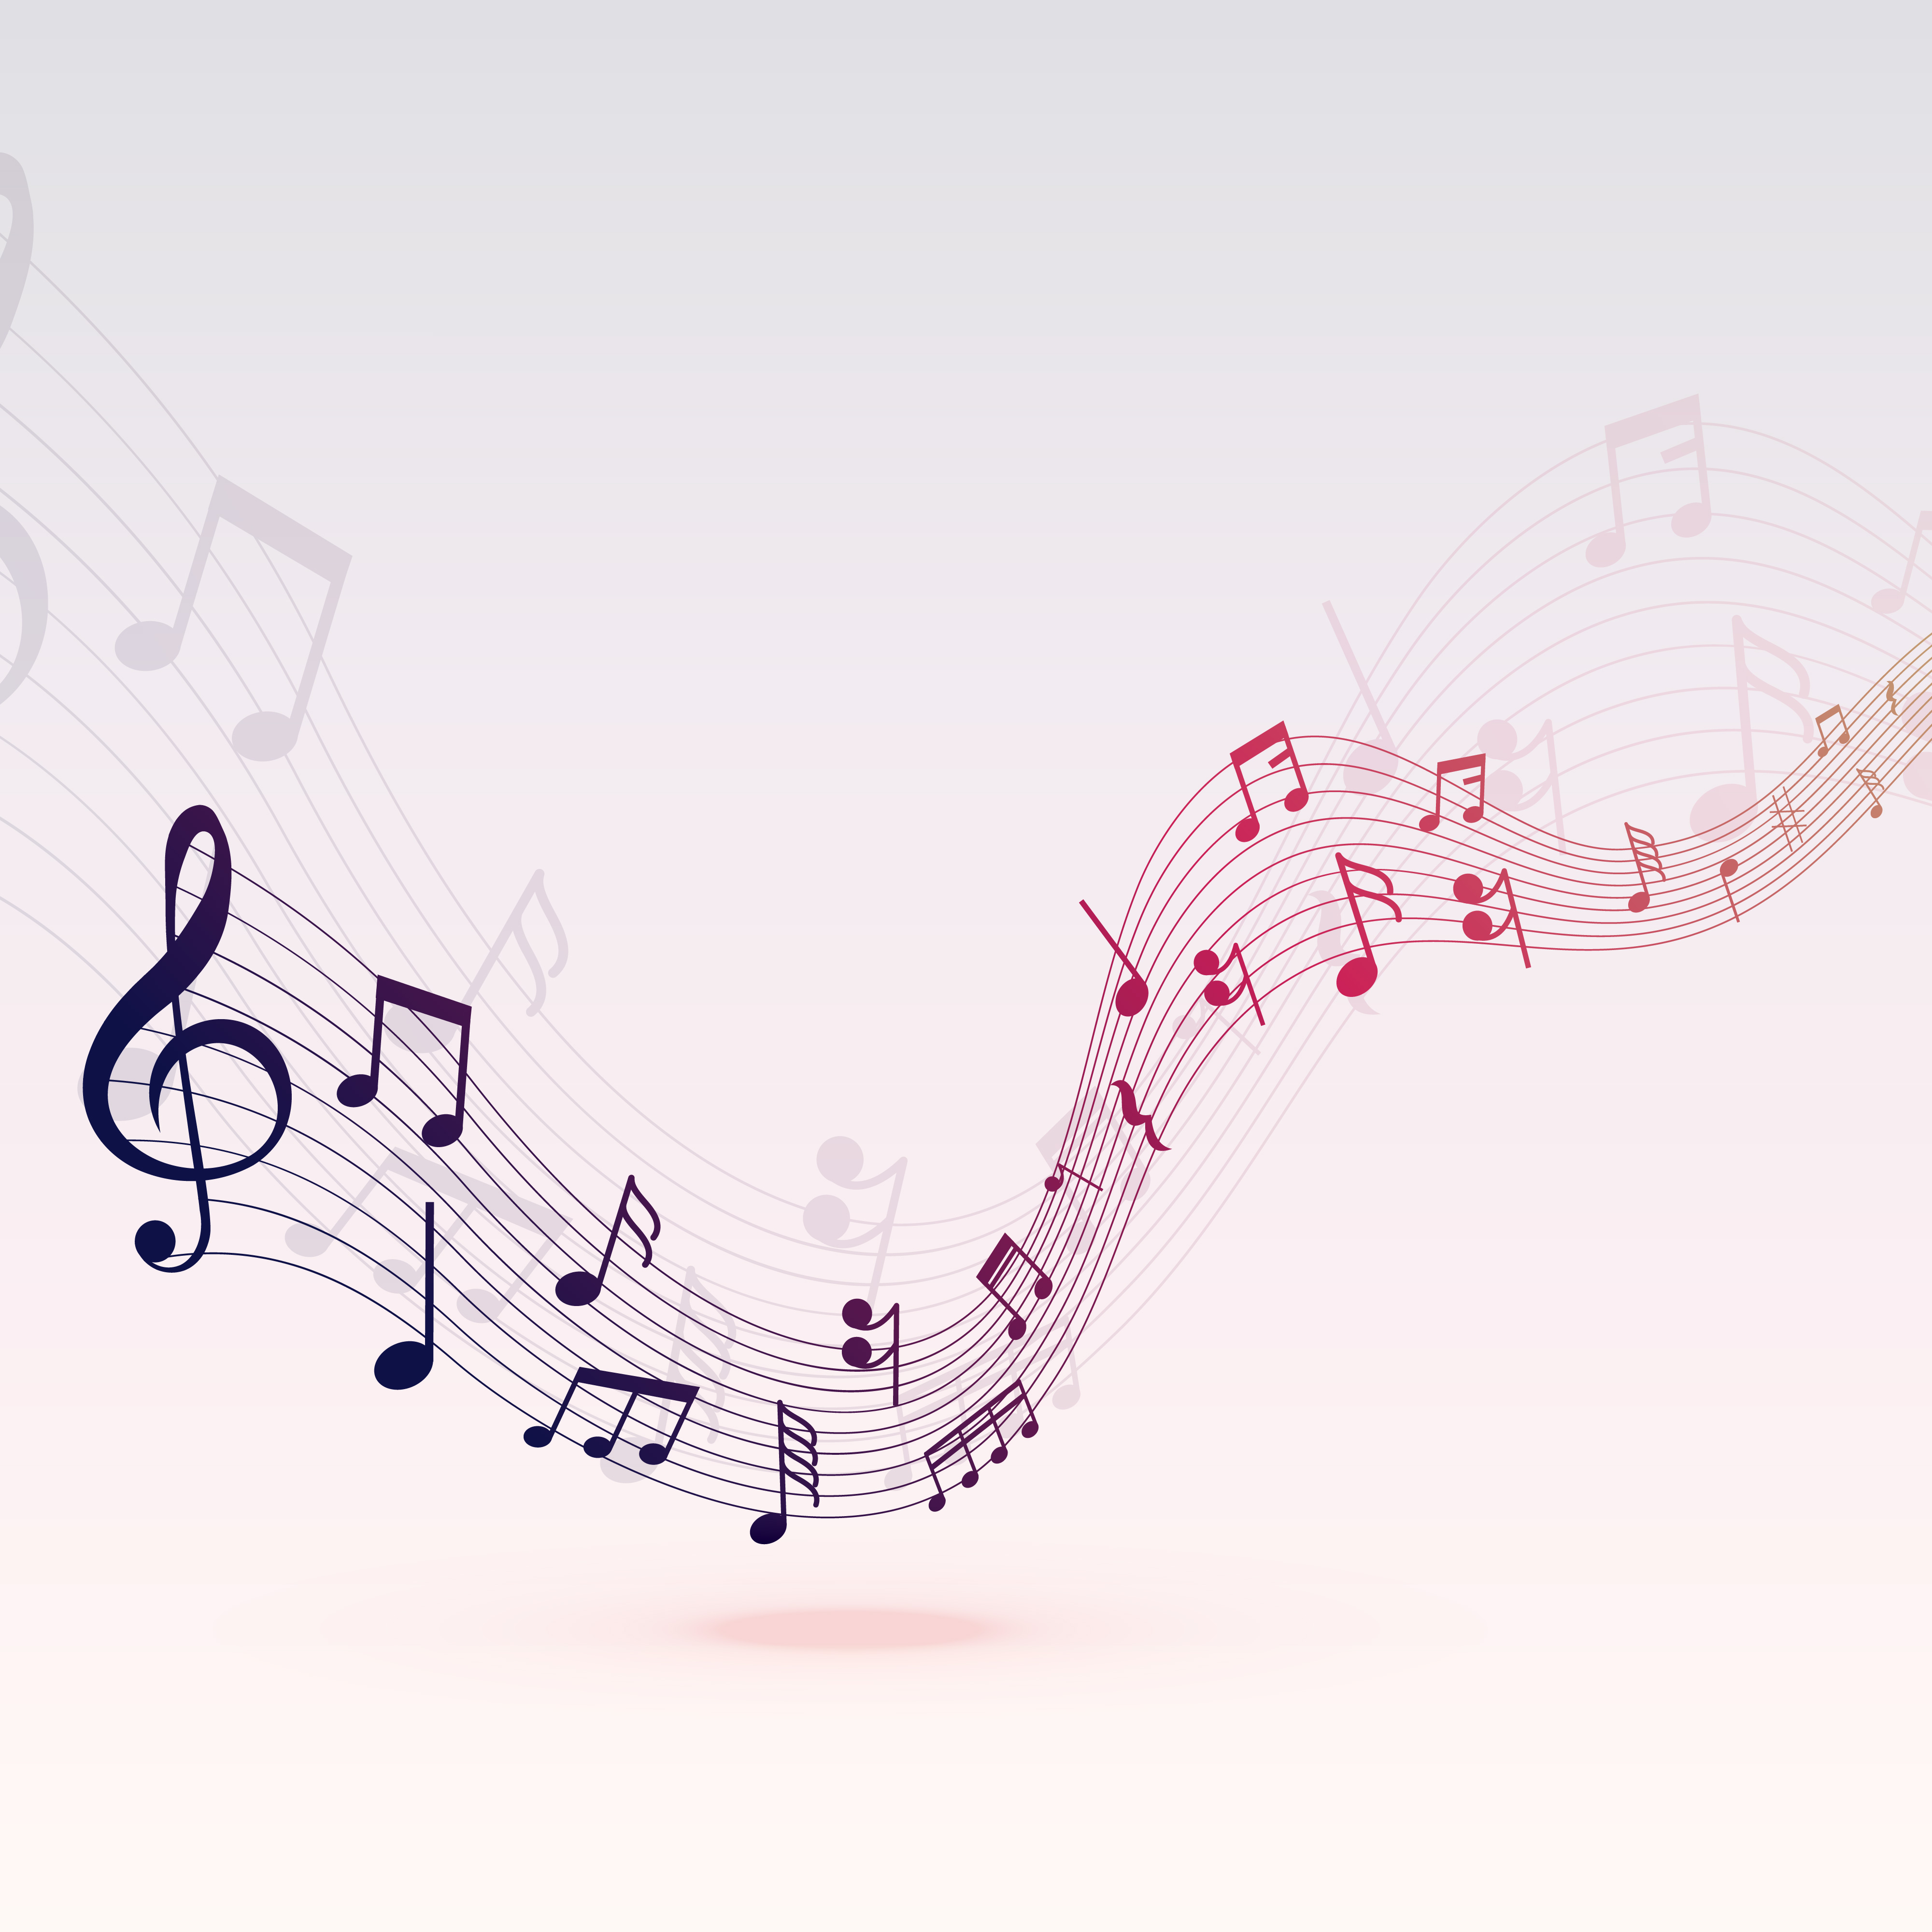 beautiful musical notes wave background design - Download ...